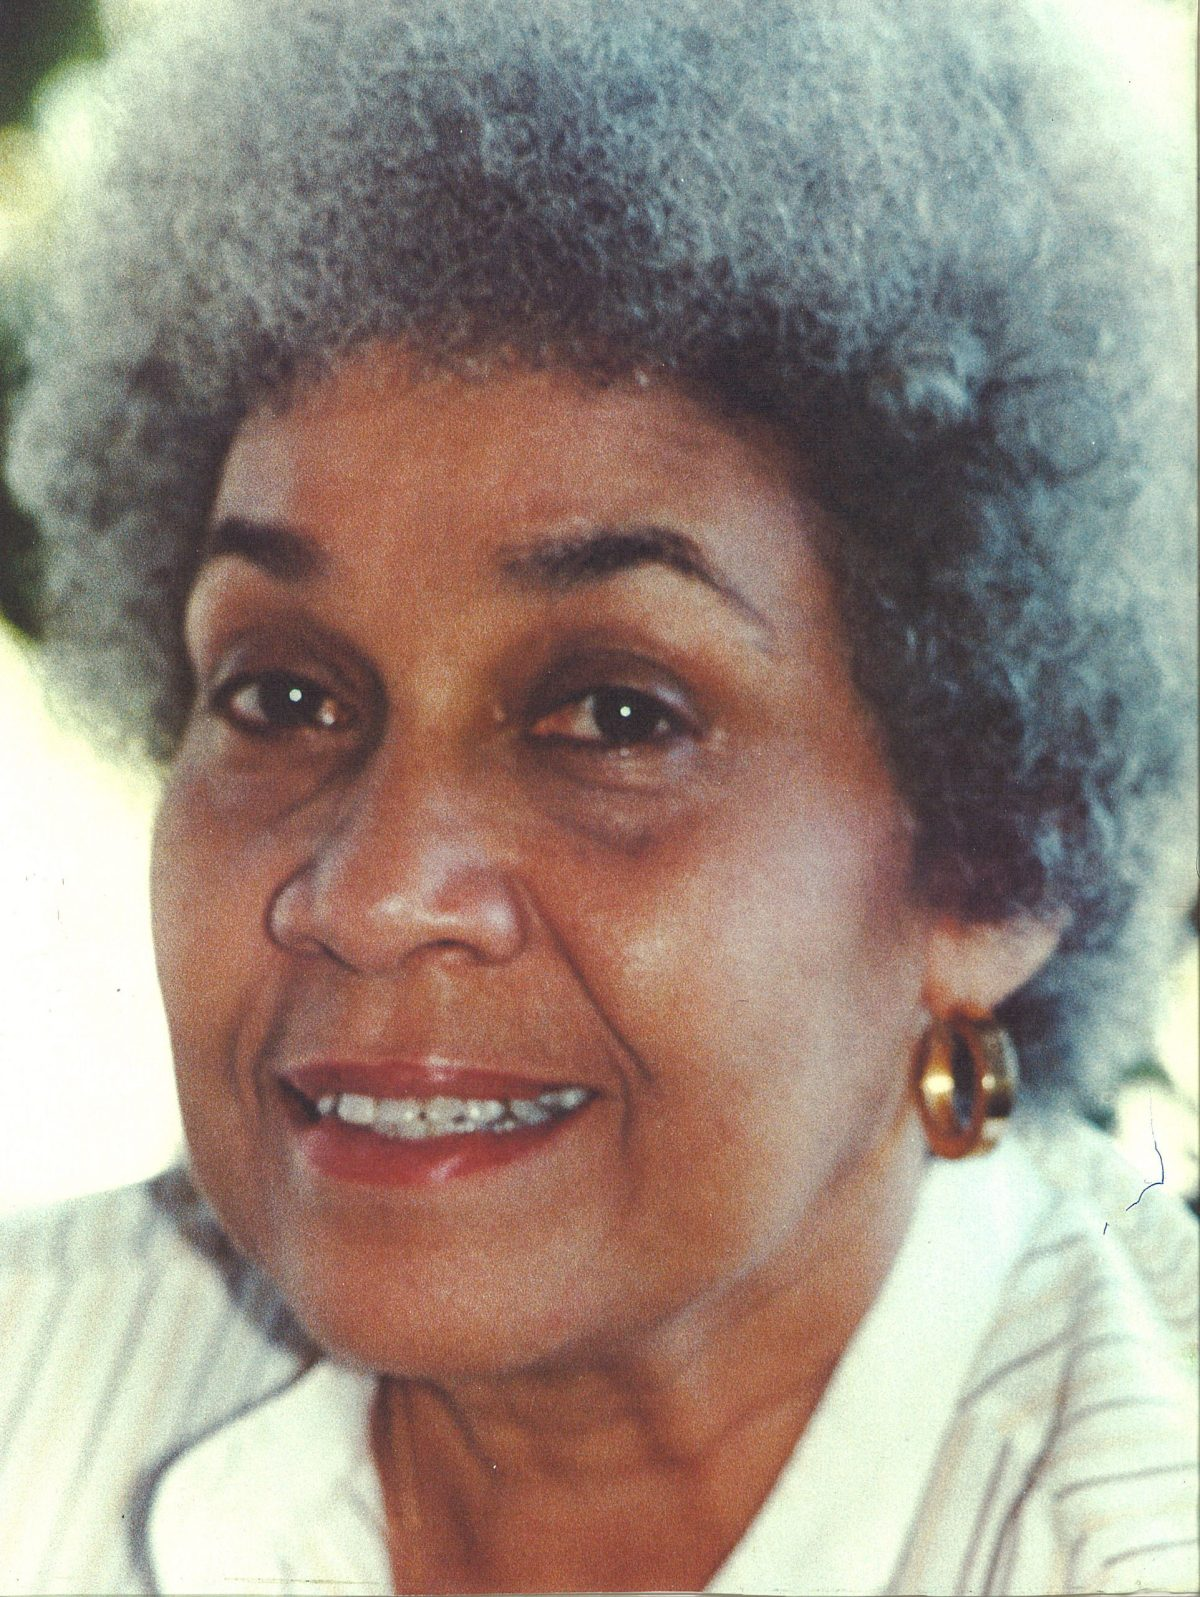 Hilda E. Stokely, Harlem activist and icon, passes (39197)